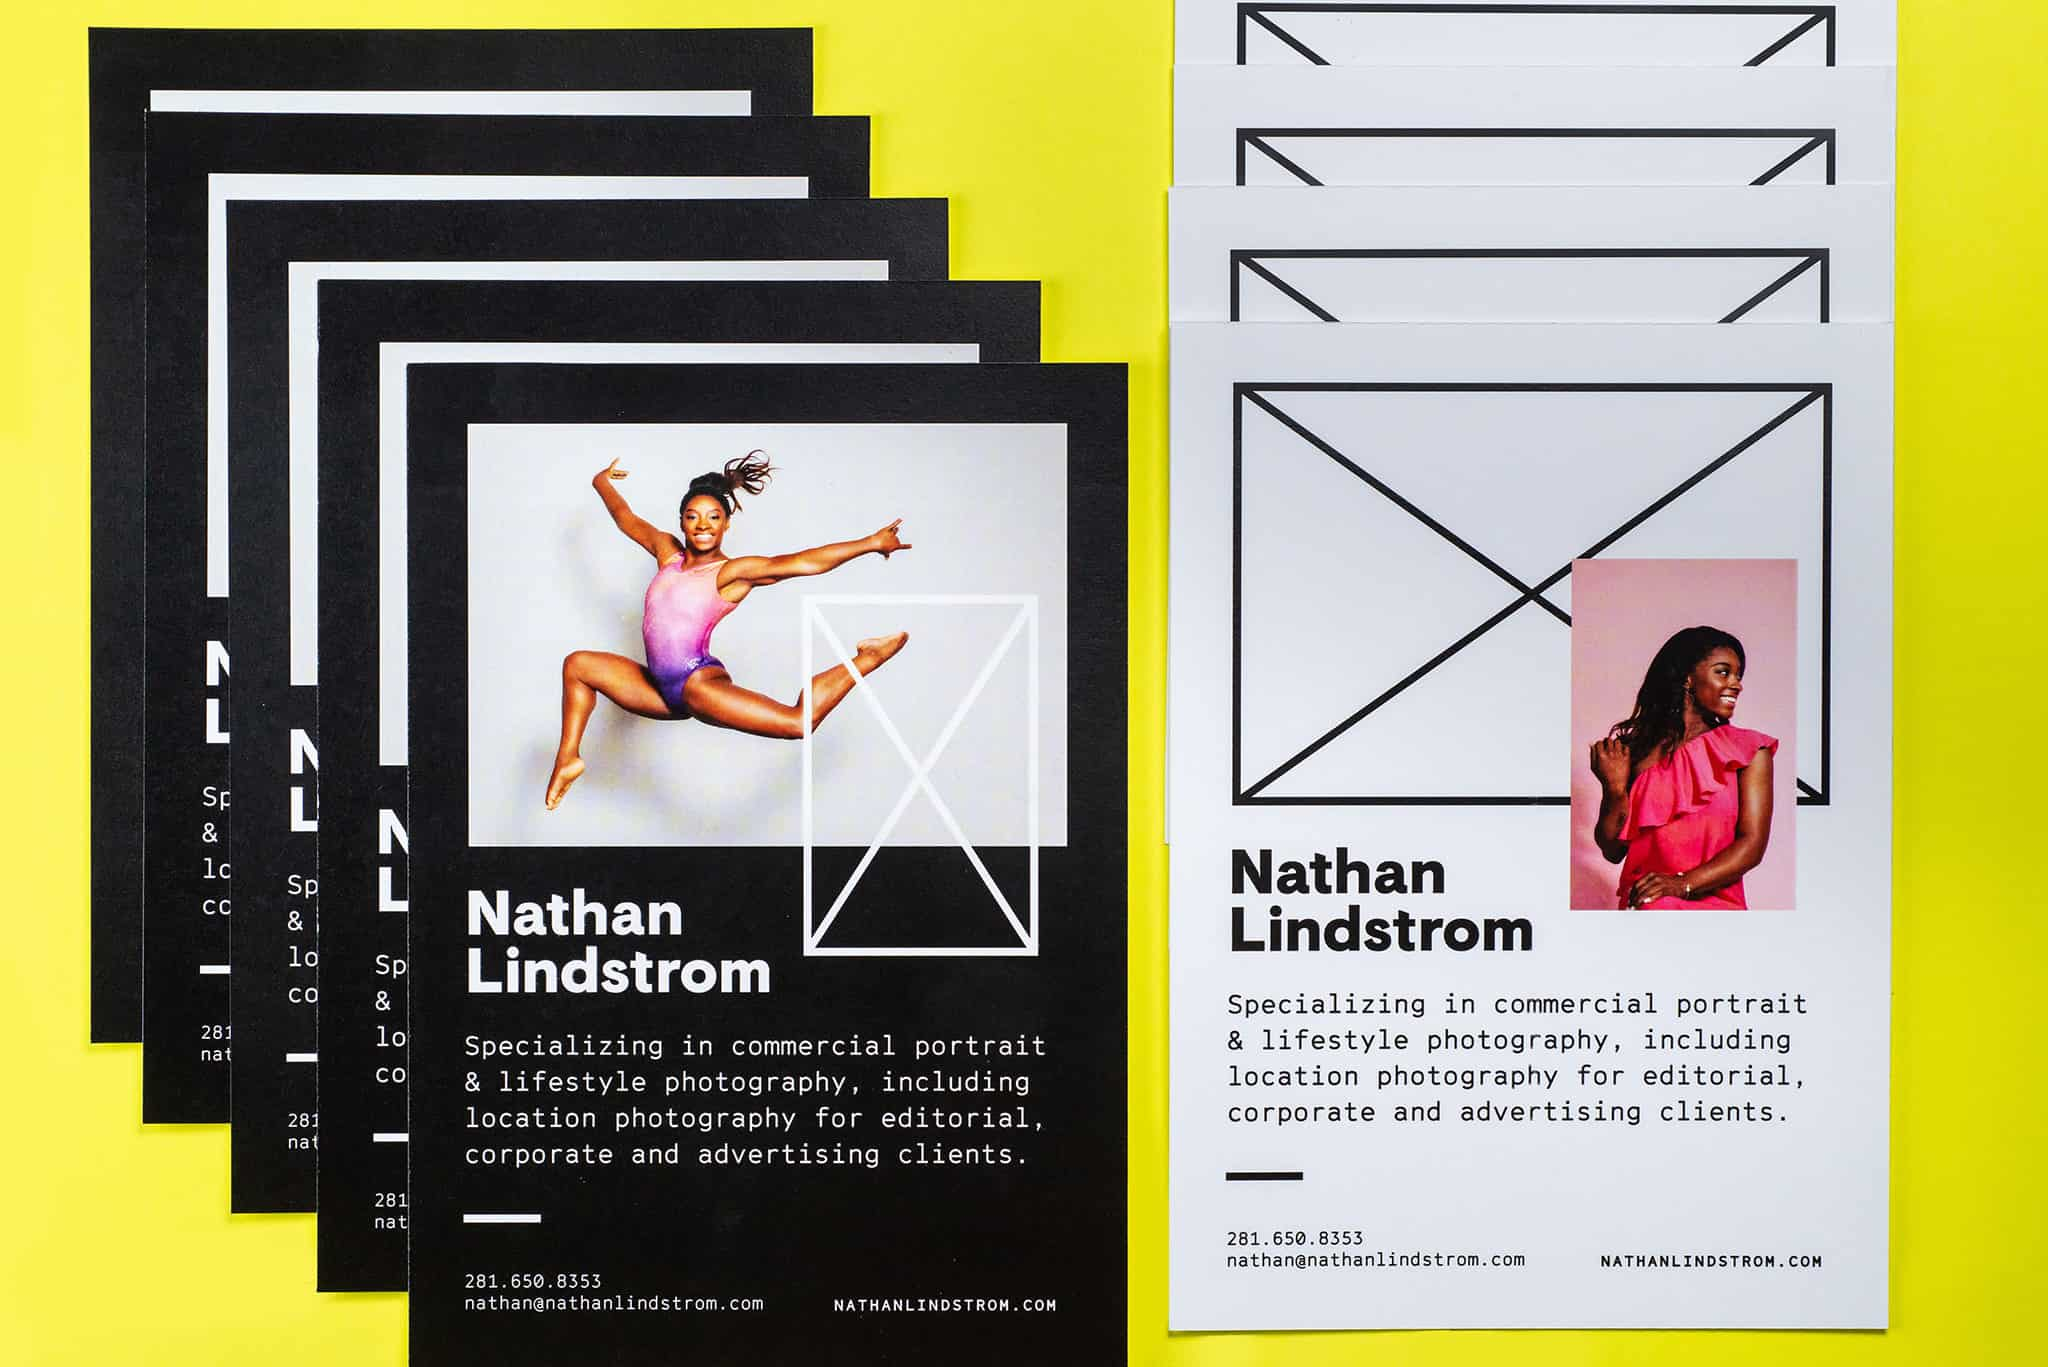 Marketing and promotional notecards for Nathan Lindstrom Photography | Designed by Field of Study: A branding and graphic design consultancy | Houston TX | Jennifer Blanco & John Earles